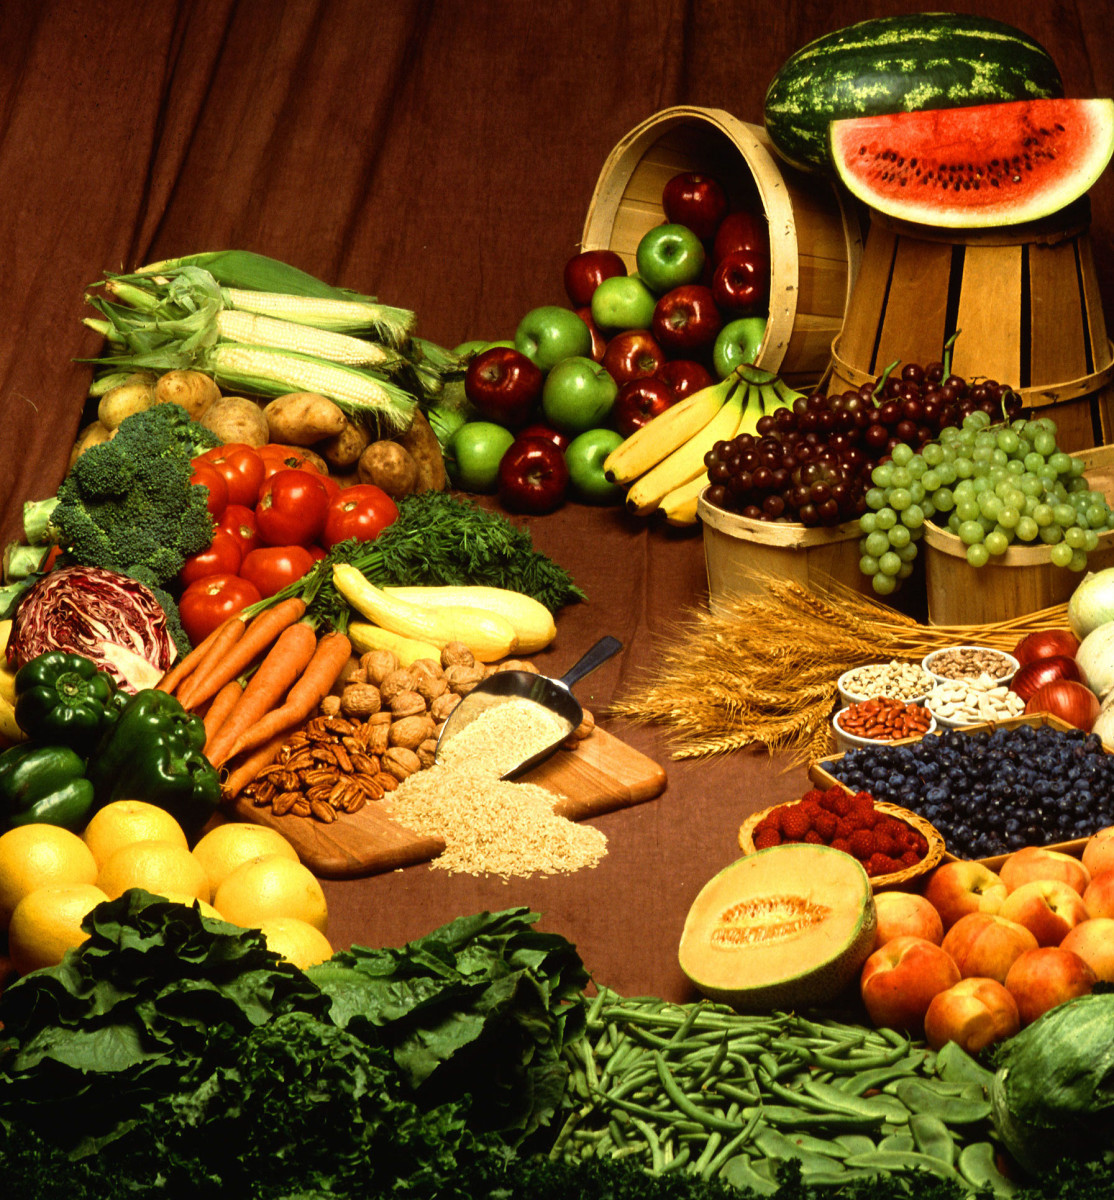 Fiber is part of the structure of fruits, vegetables, and cereals.